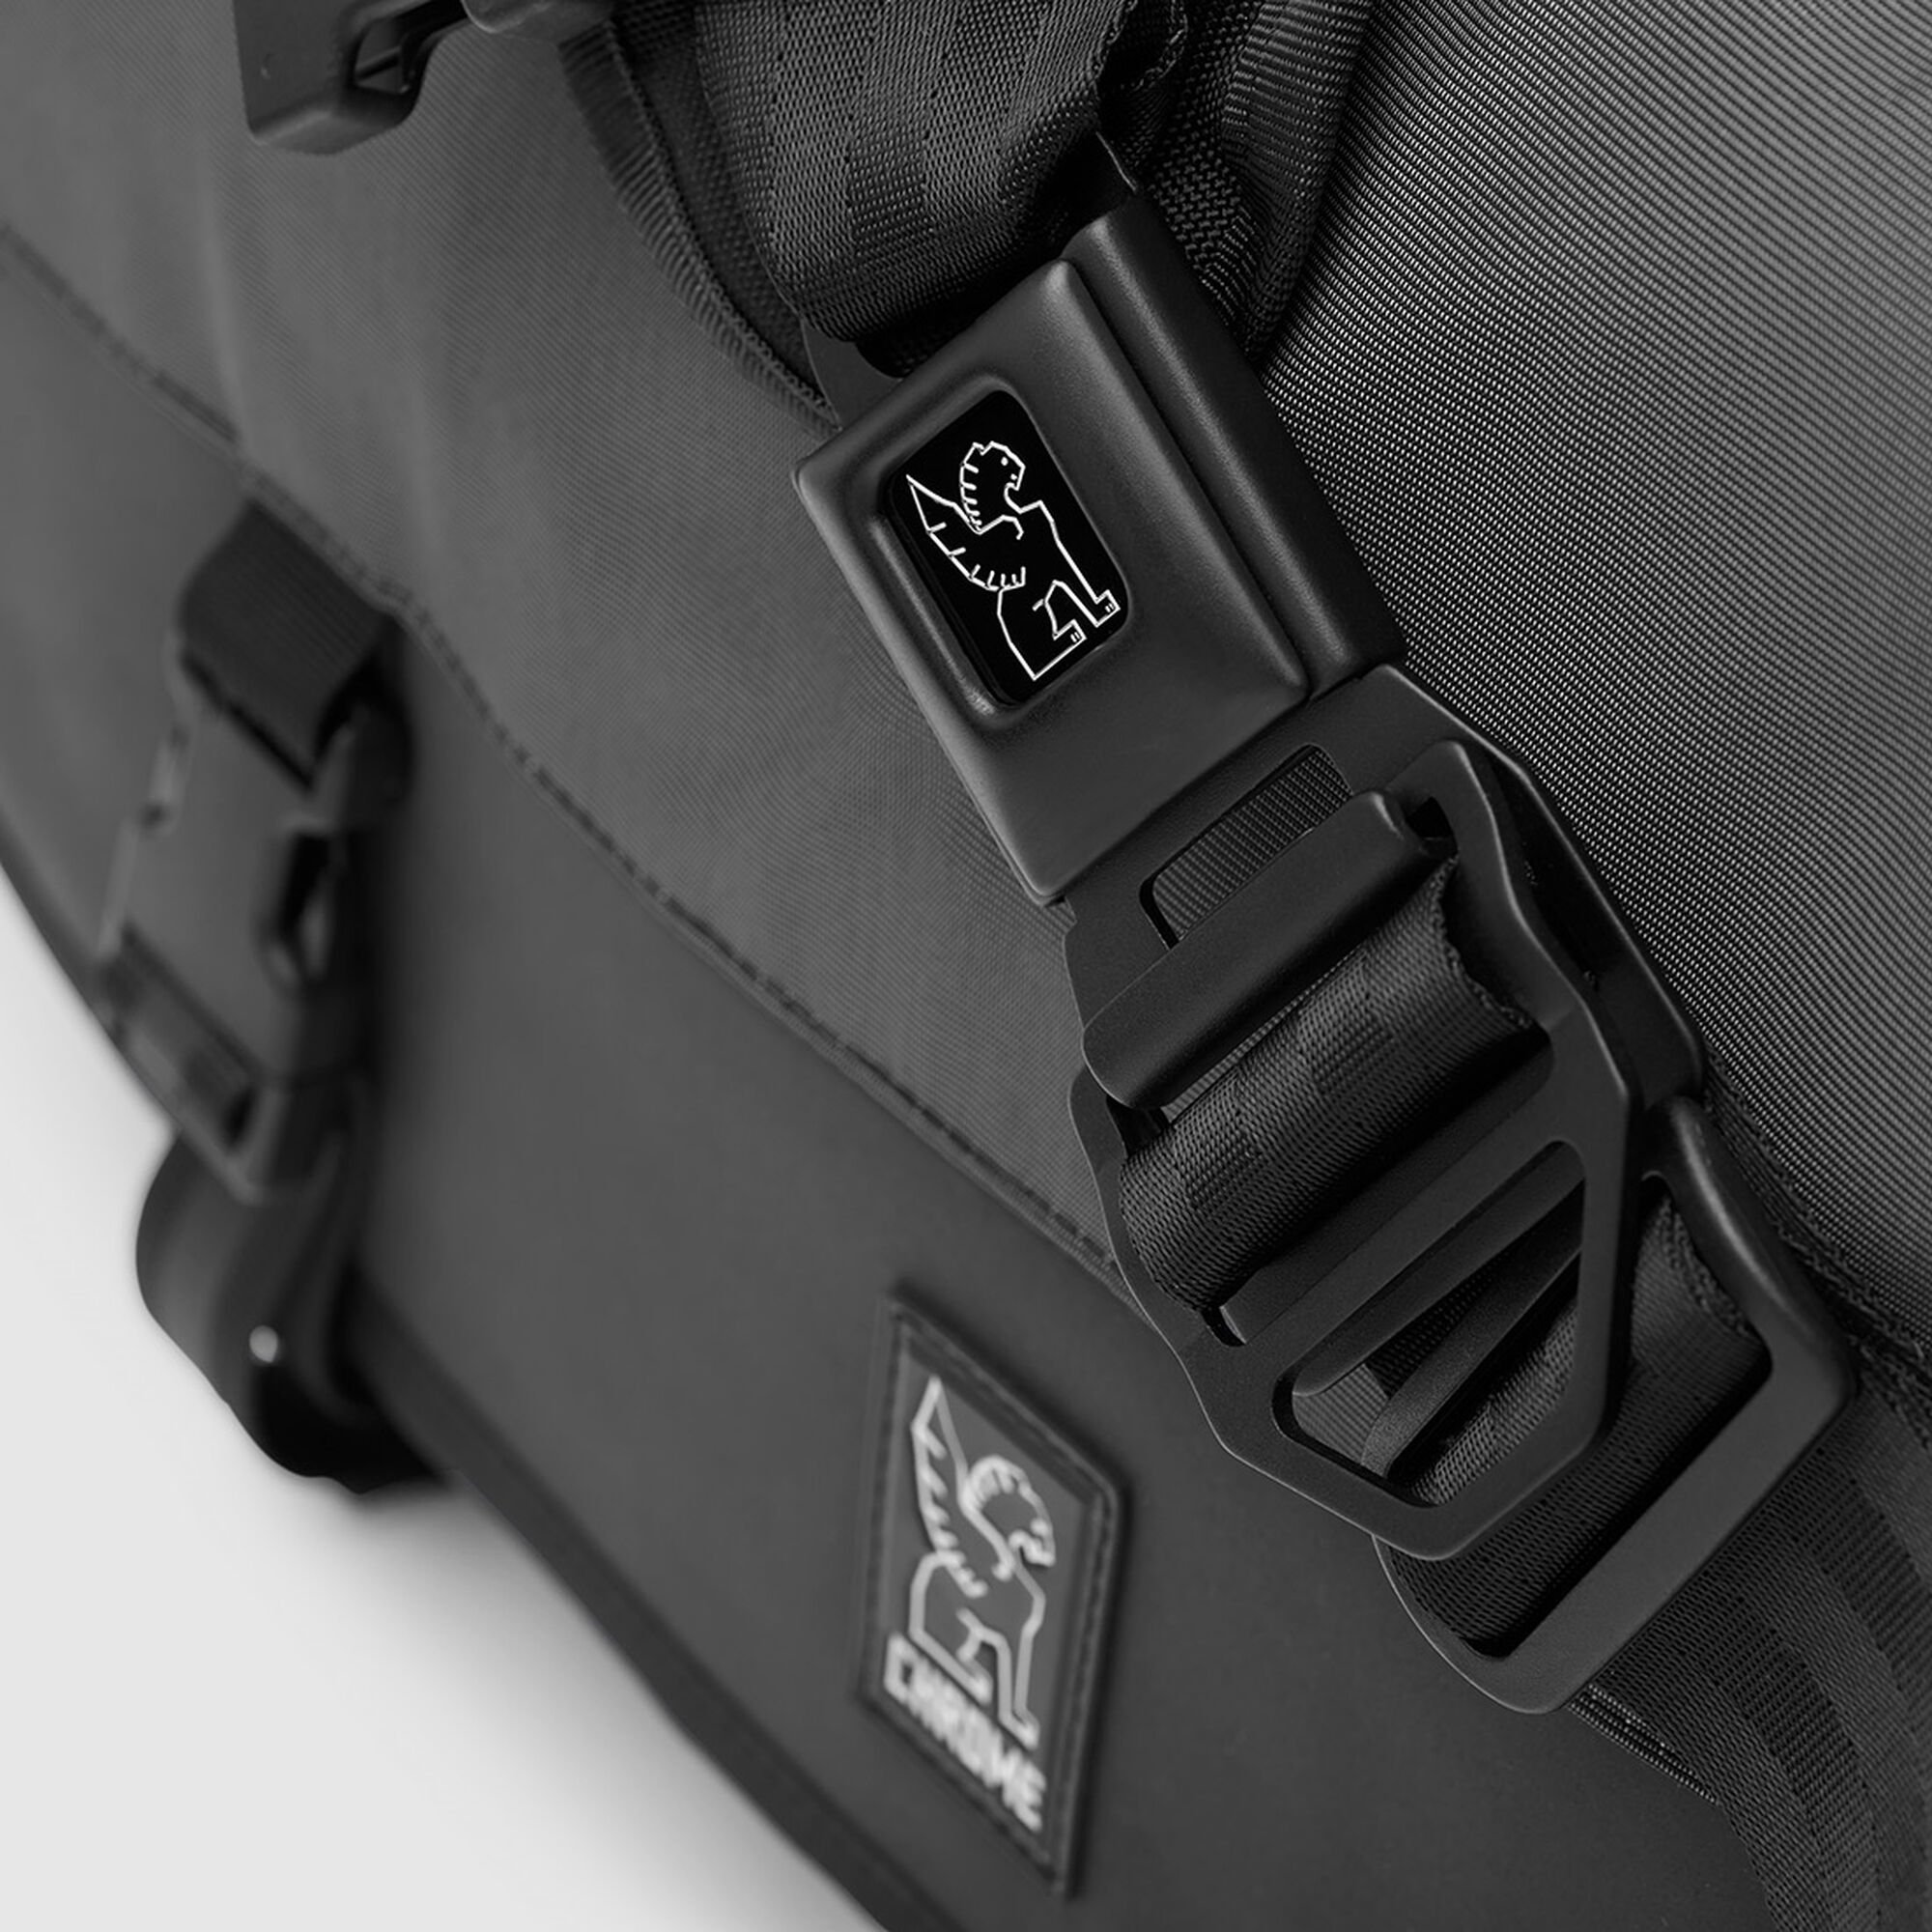 ad4beb78db The Welterweight Citizen Messenger - Fits laptops up to 17